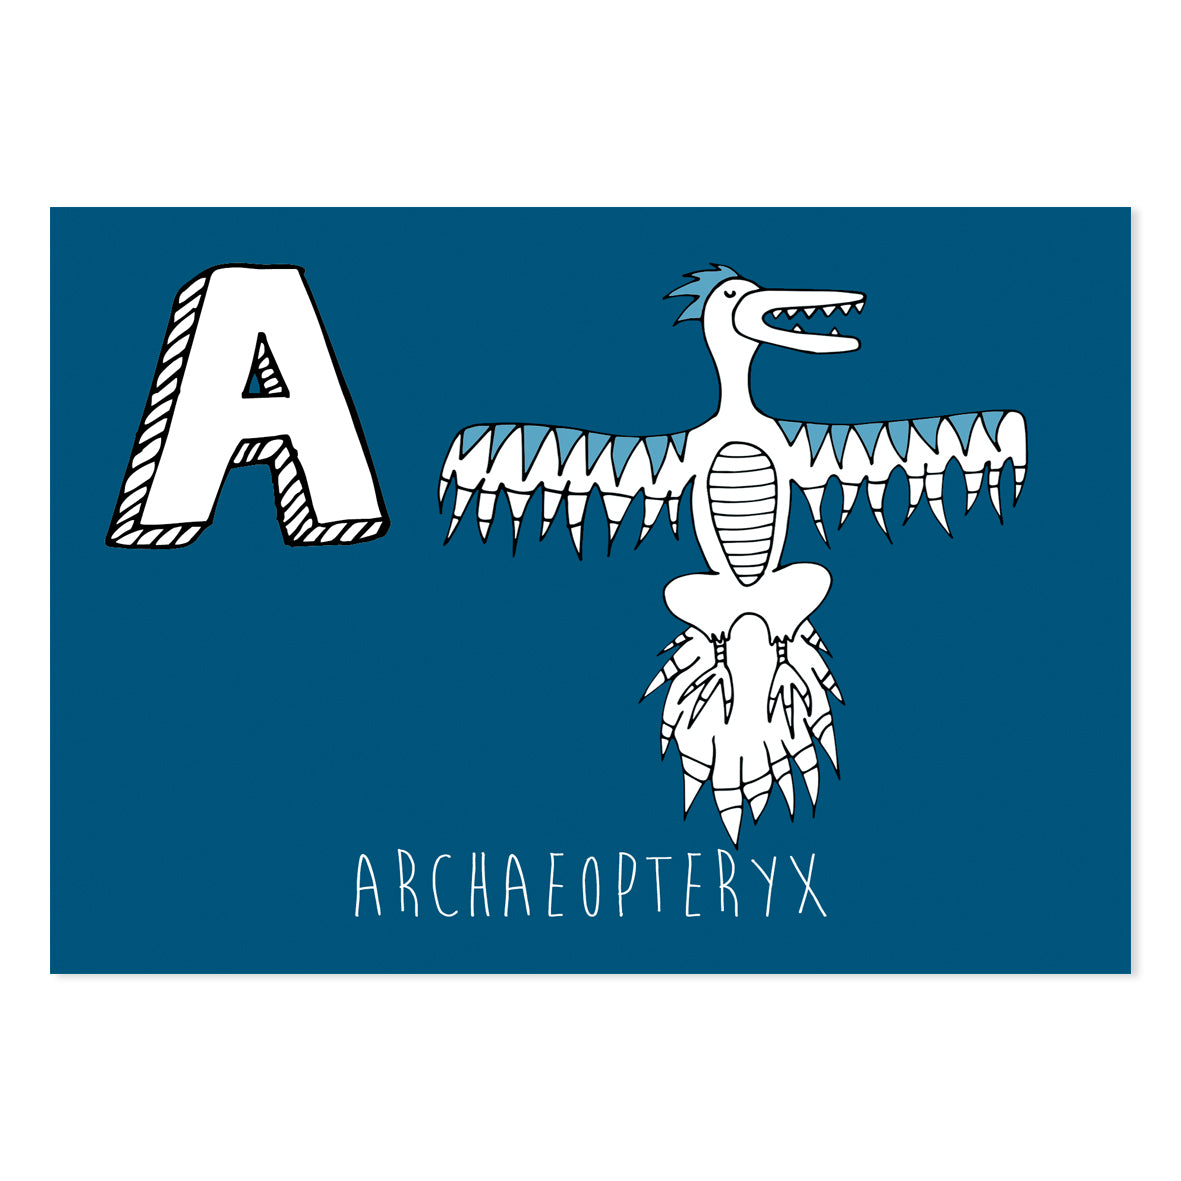 Navy postcard featuring the letter A for archaeopteryx